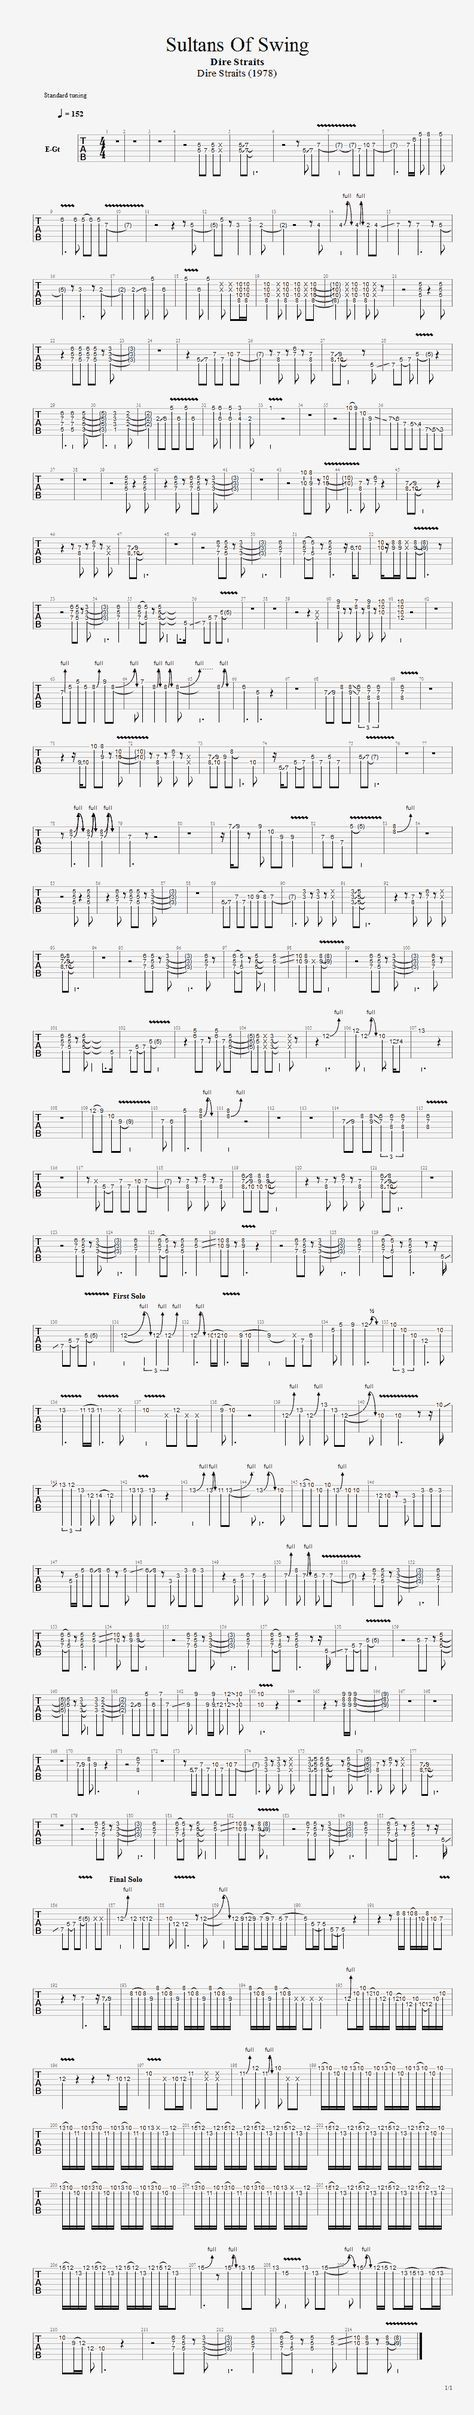 Best 25 sultans of swing ideas on pinterest dire straits sultans of swing guitar solo tab hexwebz Image collections